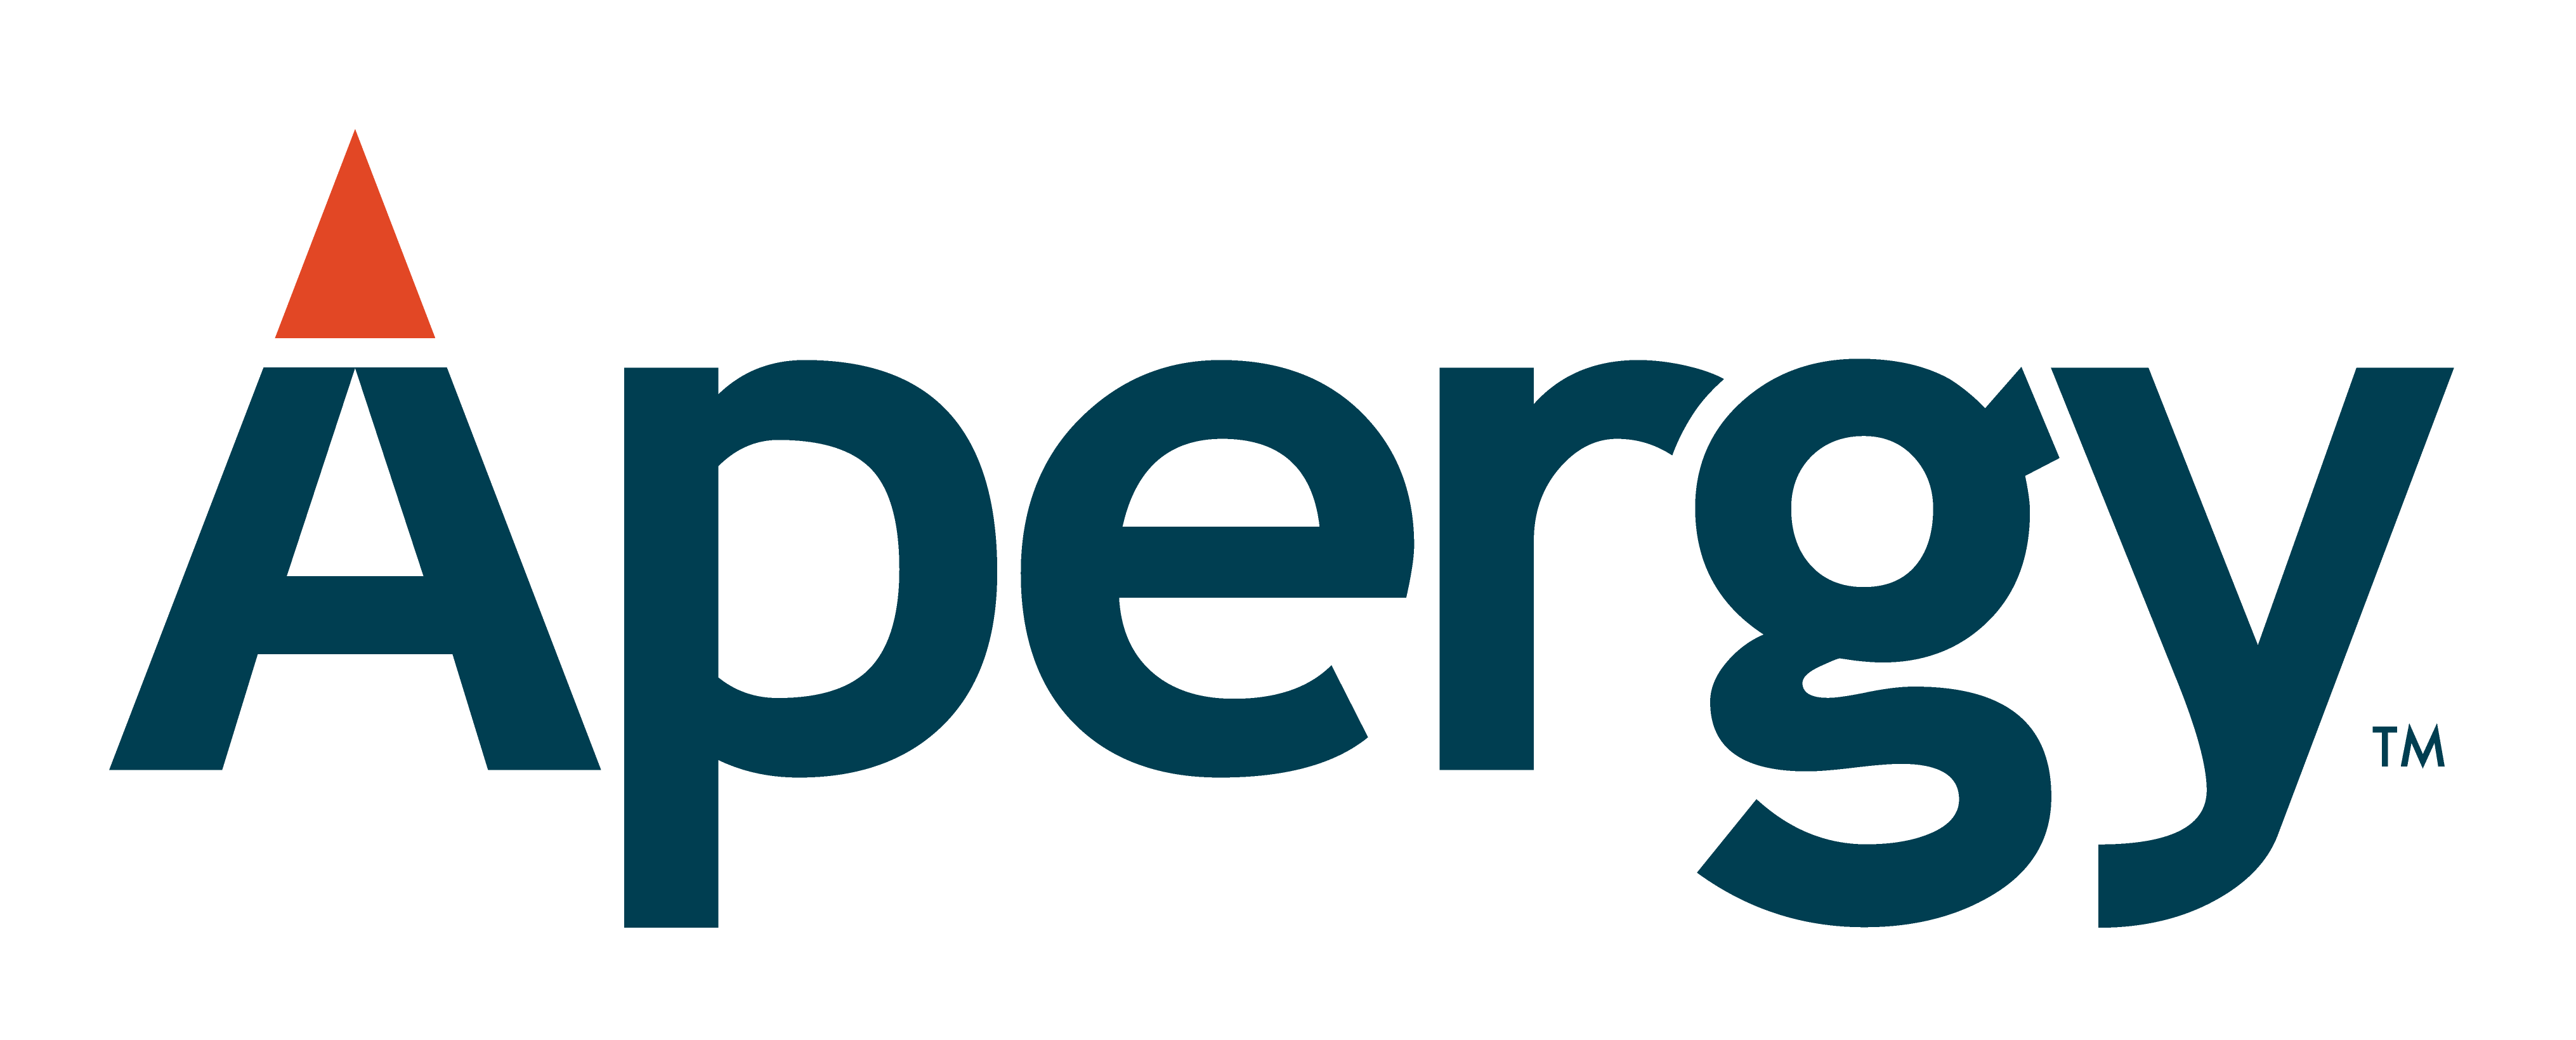 Apergy to Participate in the Bank of America Global Energy Conference